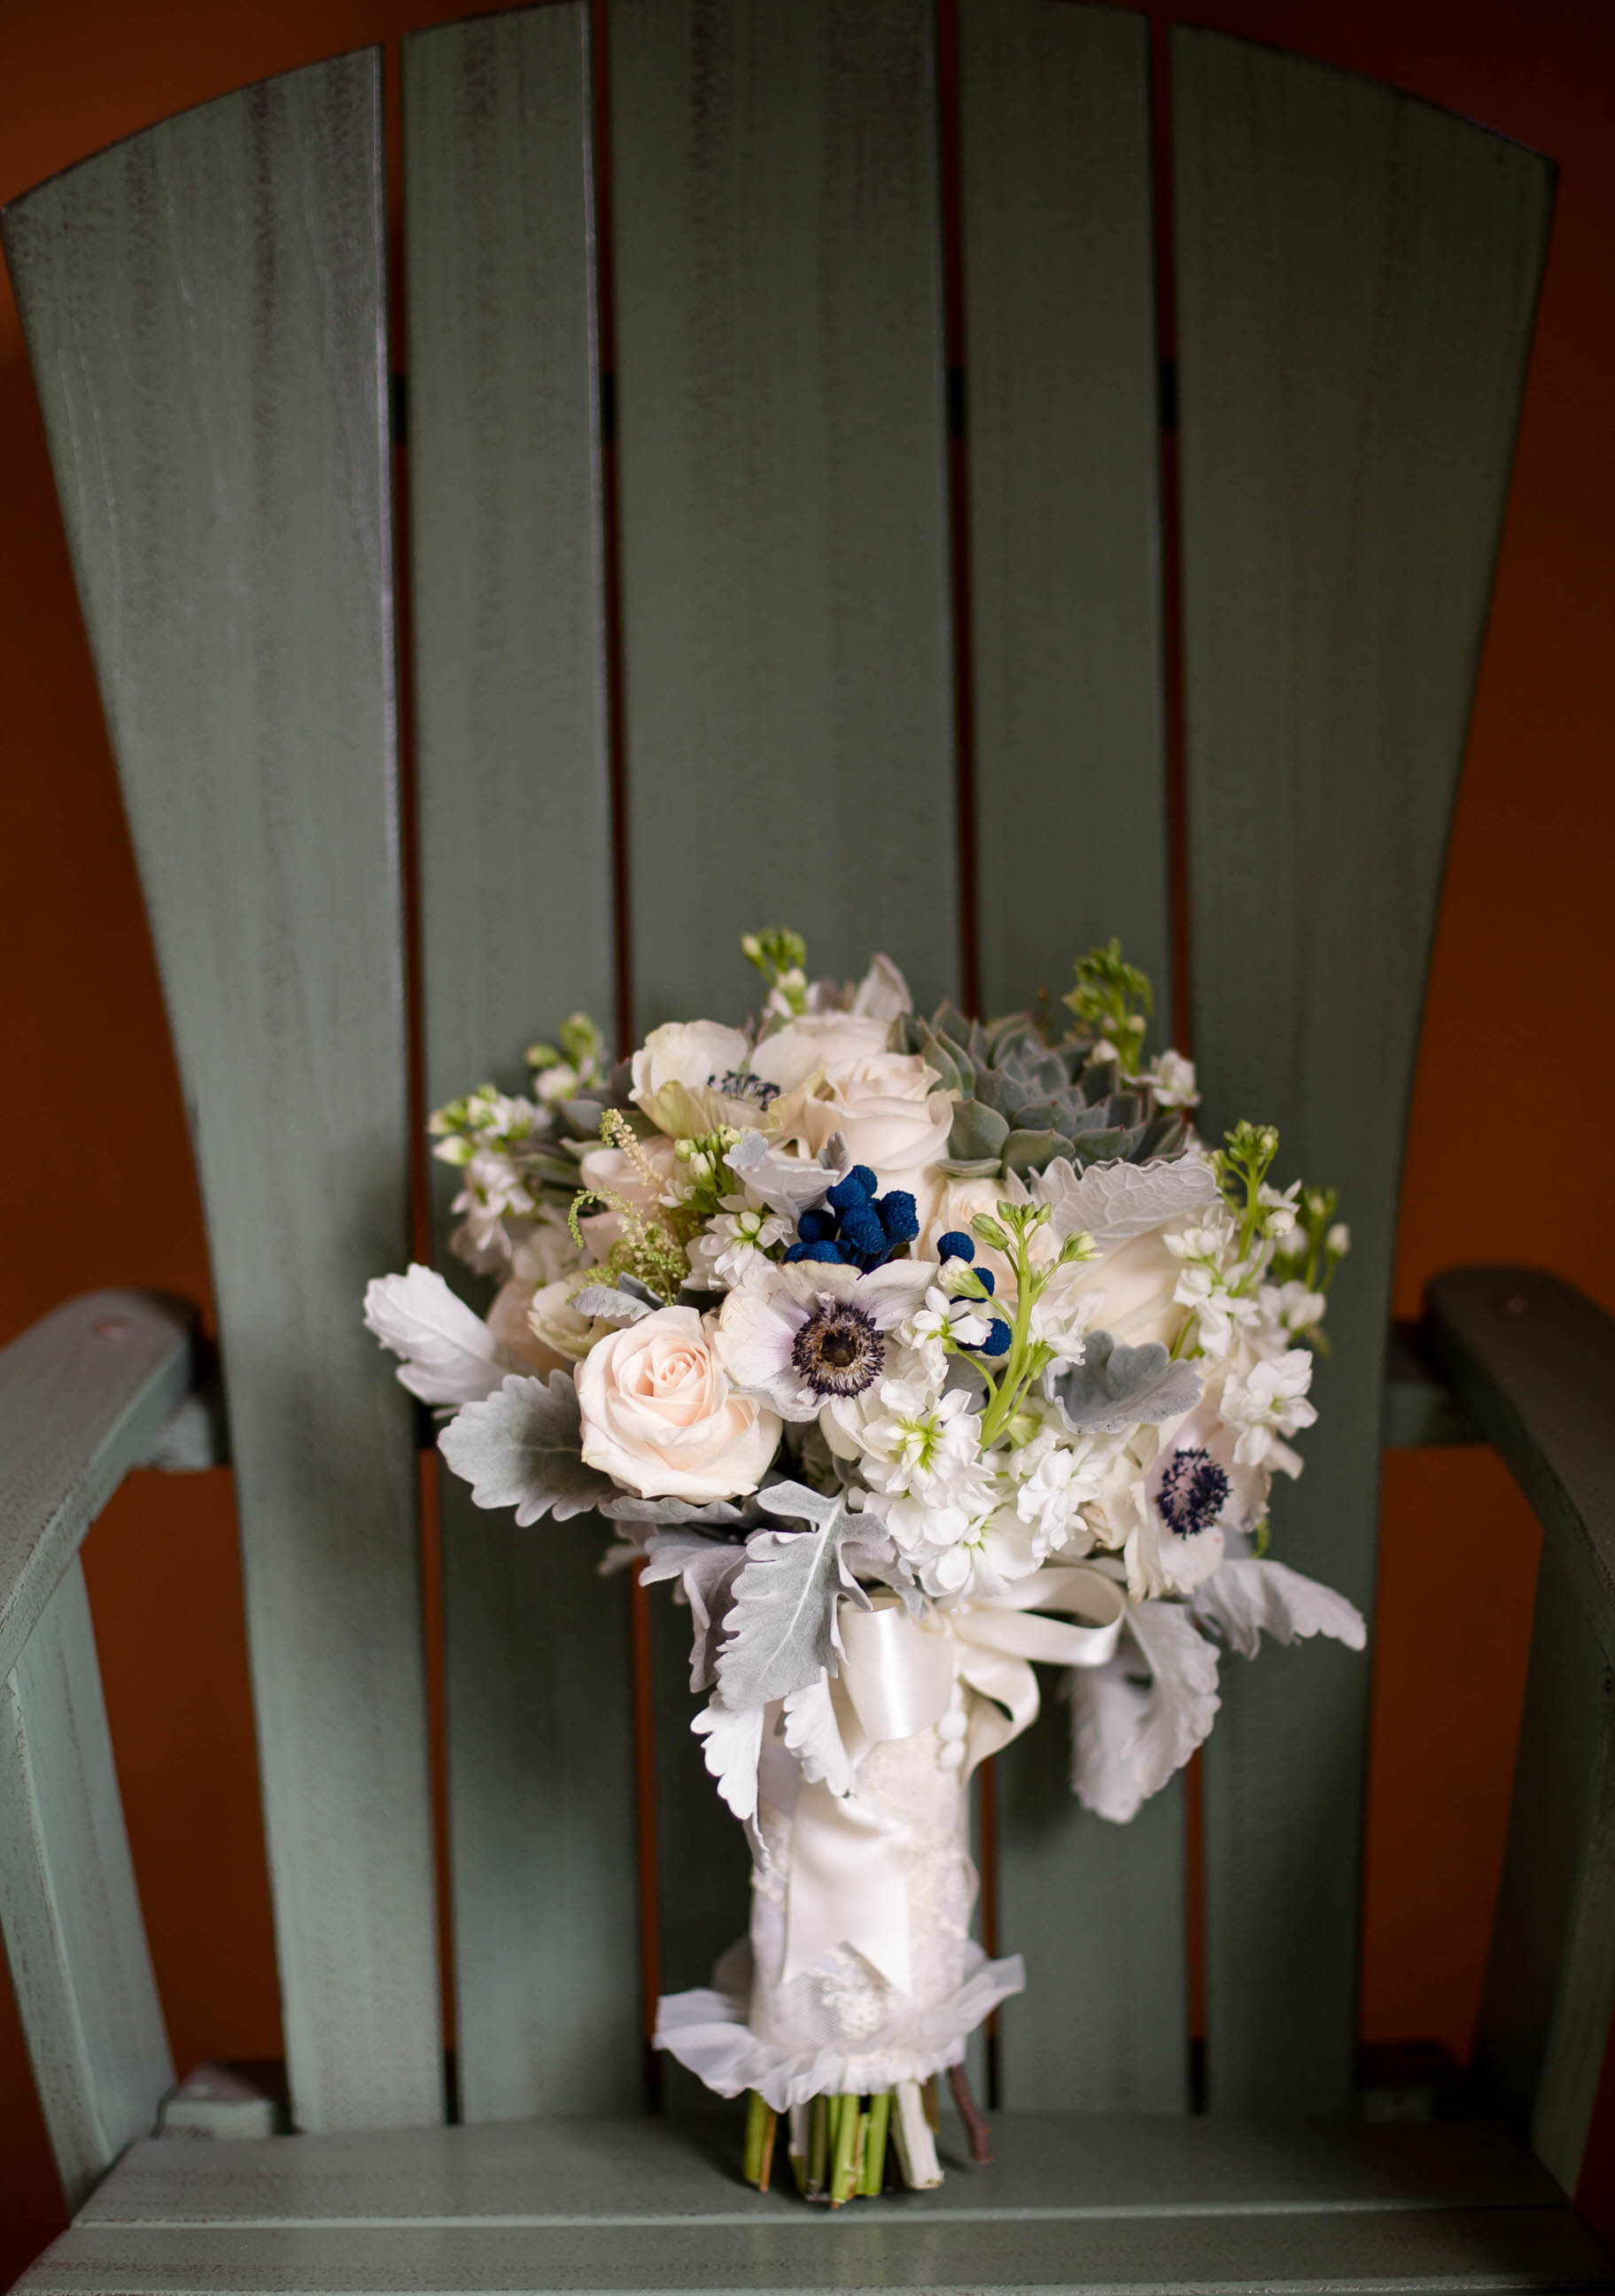 bridal_bouquet_wedding_details_tiny_house_photo_stephanie_lynn_photography.jpg